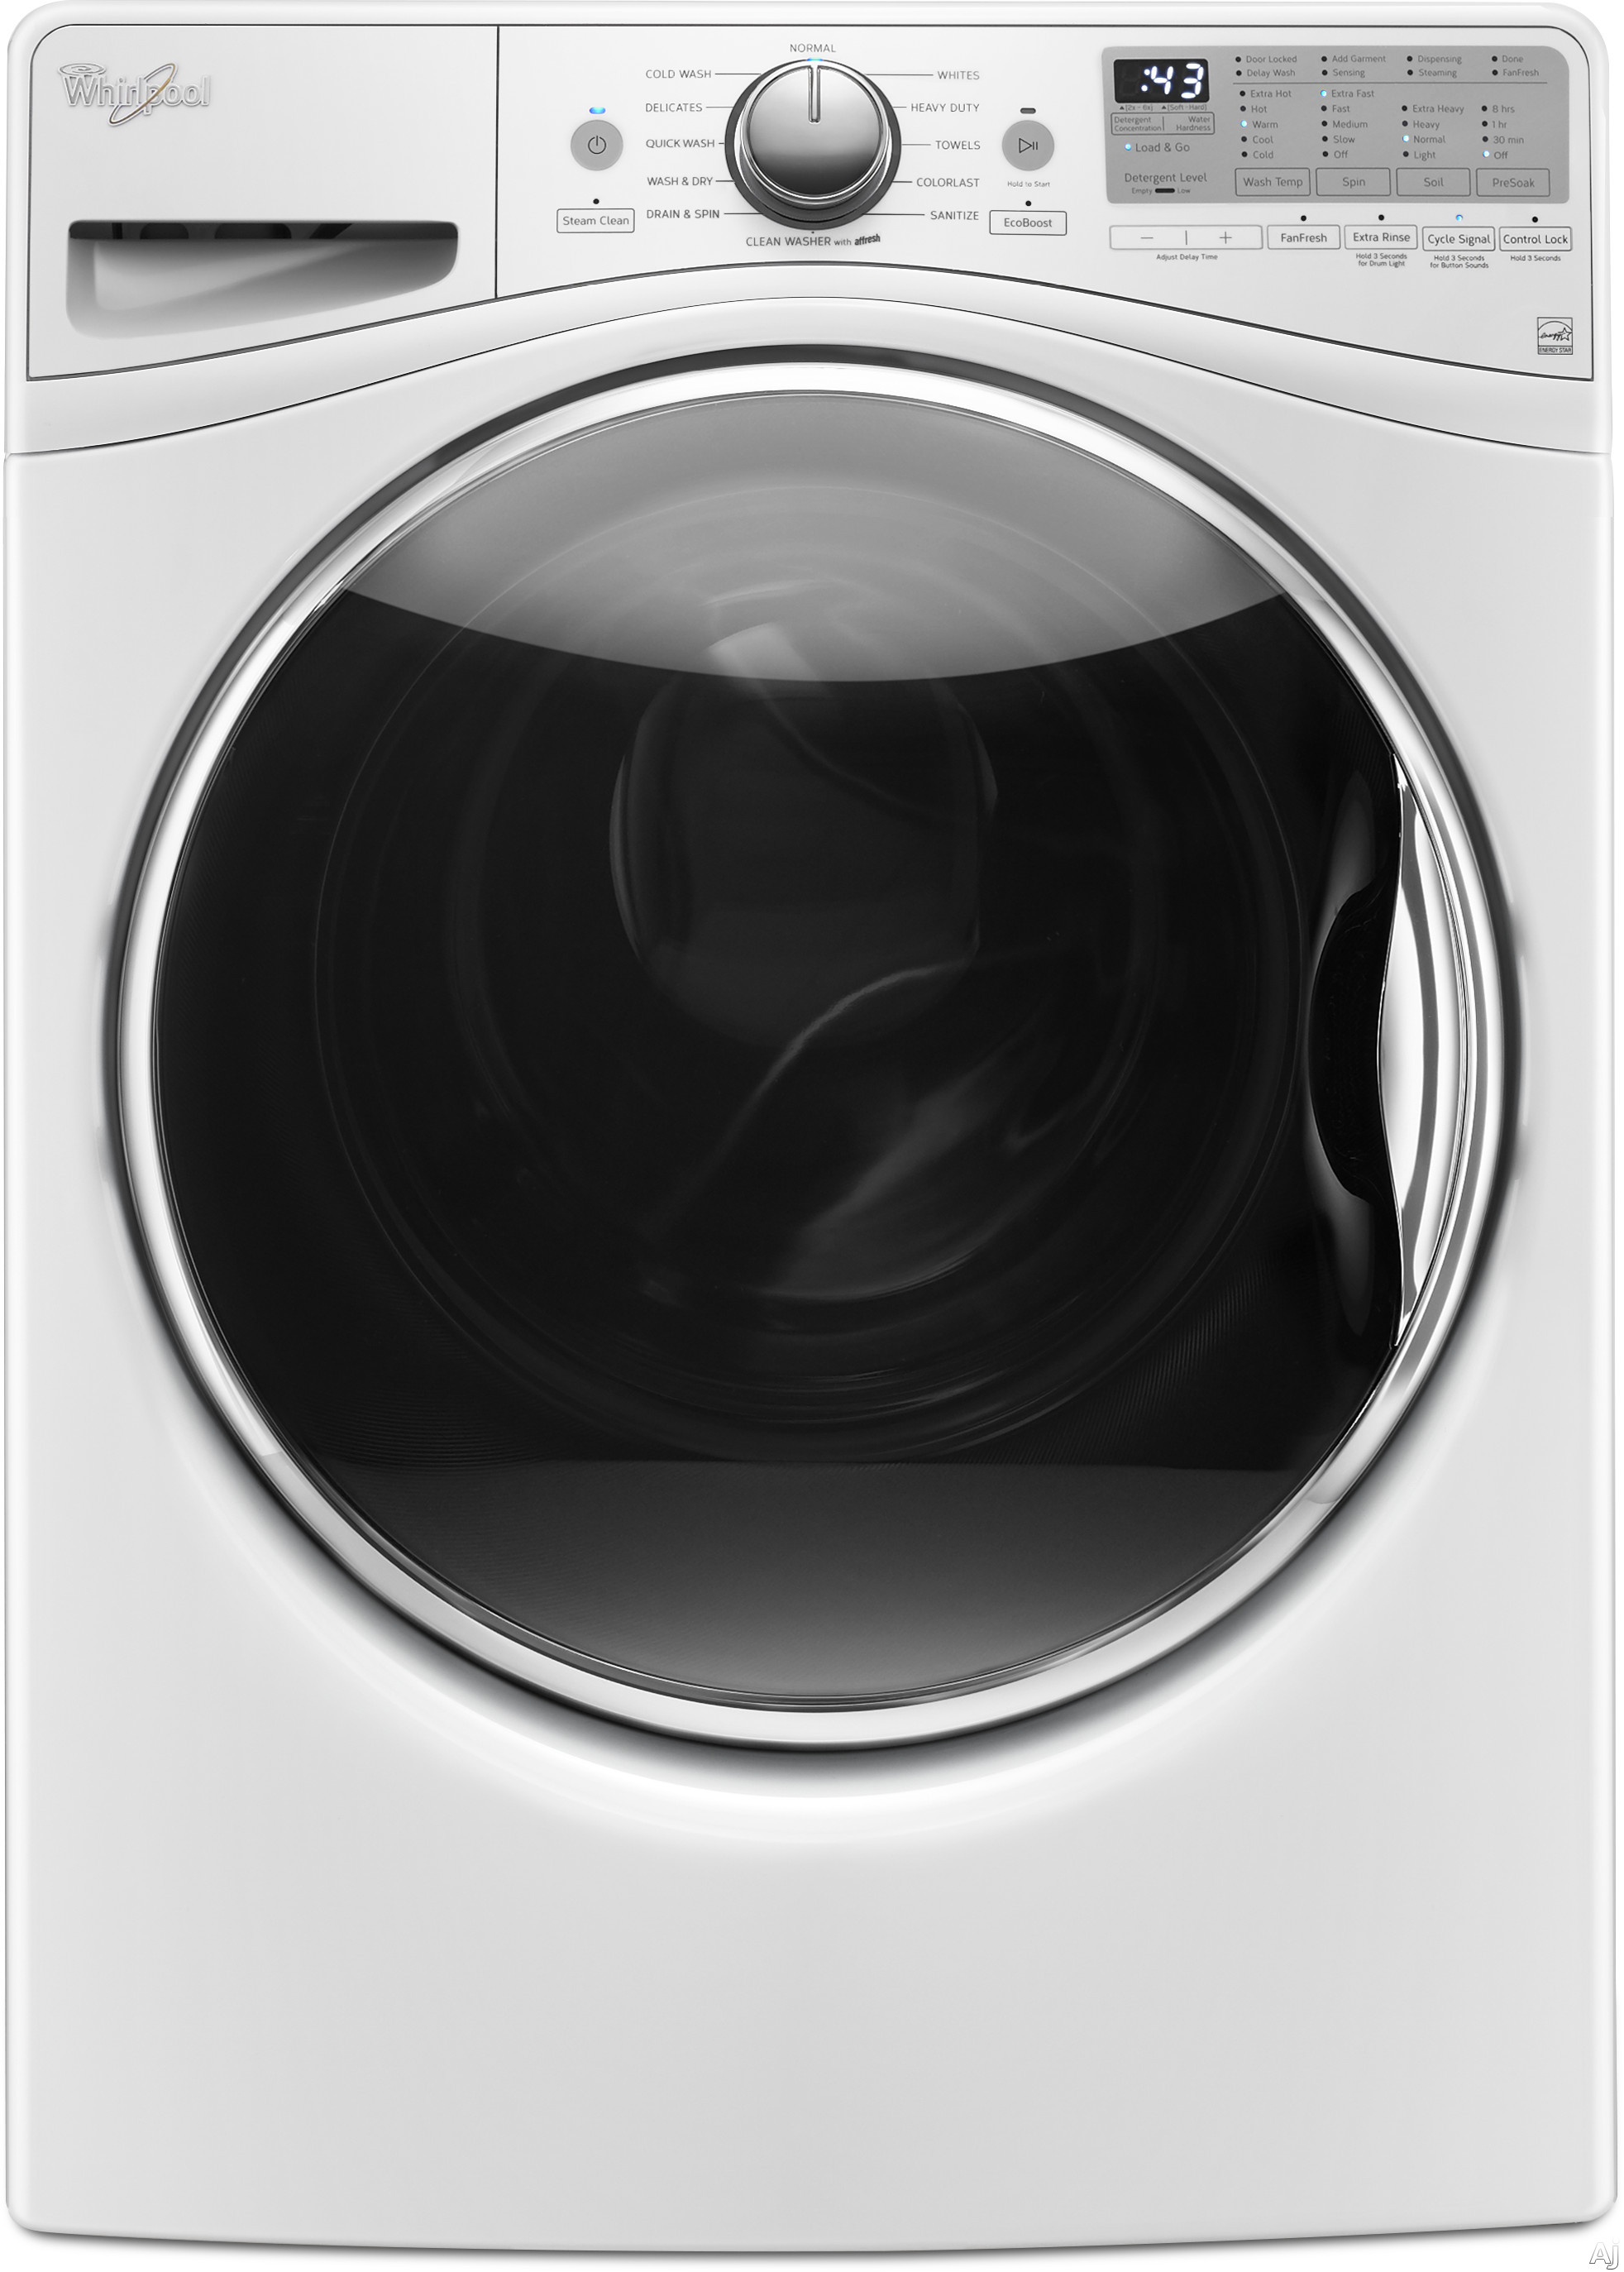 Whirlpool Laundry,Whirlpool Washers,Whirlpool Front Load (Tumble)